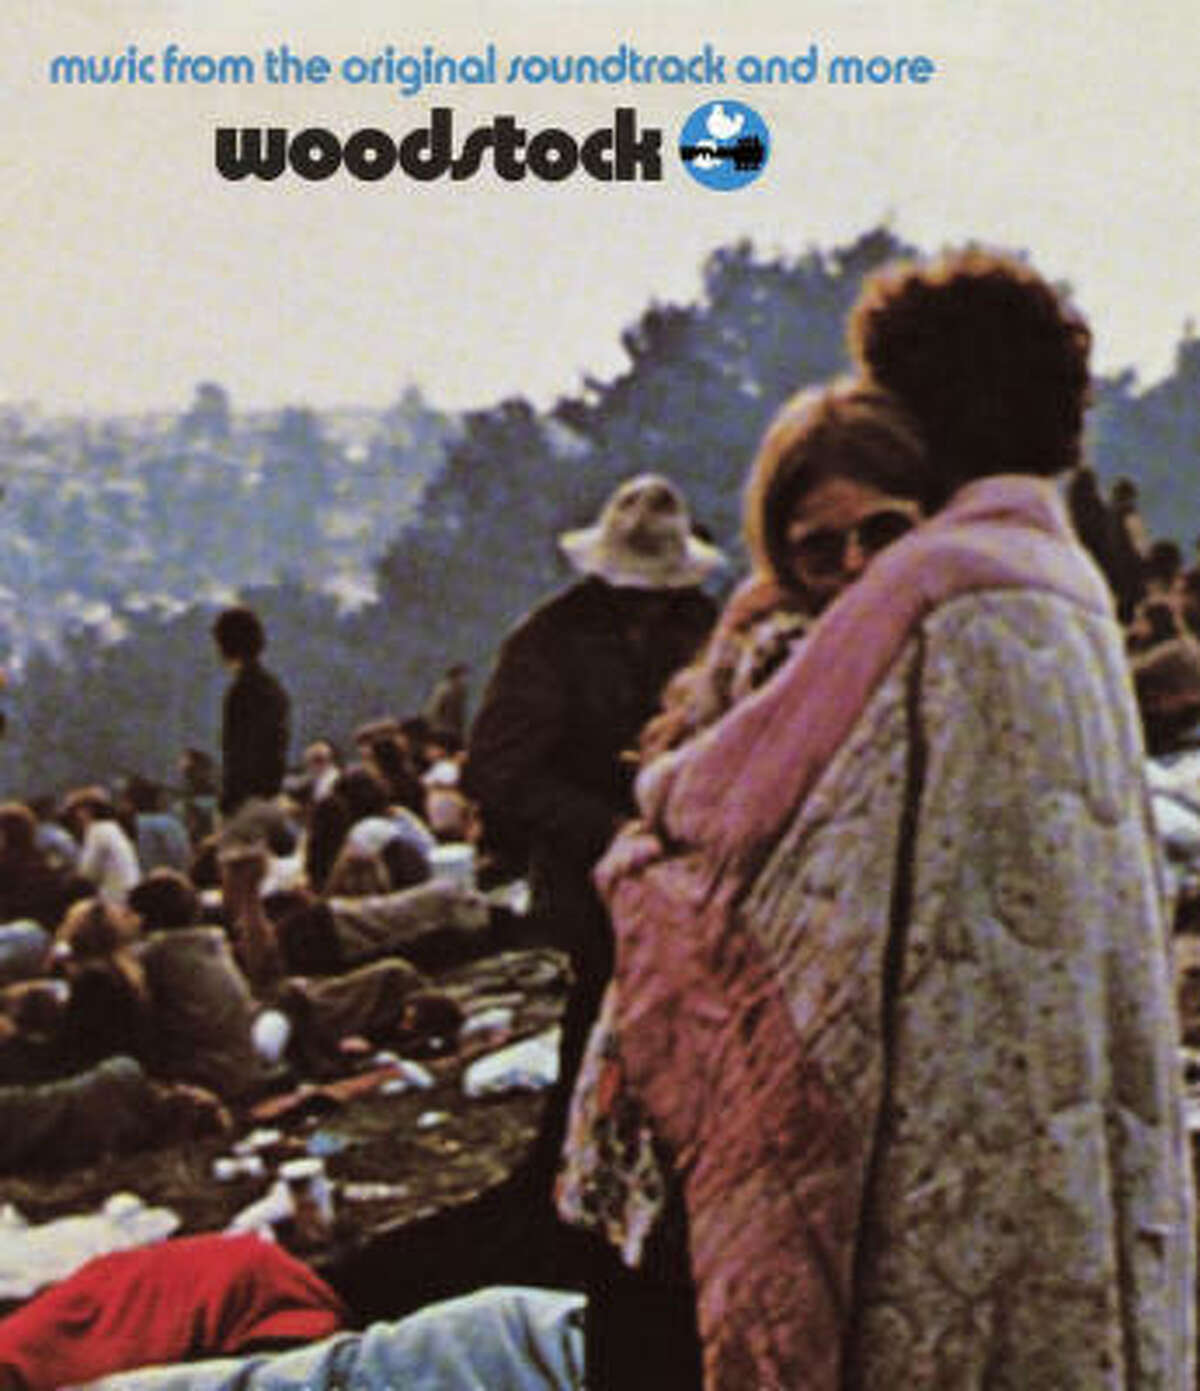 Bobbi and Nick Ercoline appear on the soundtrack album that immortalized them at the legendary festival.